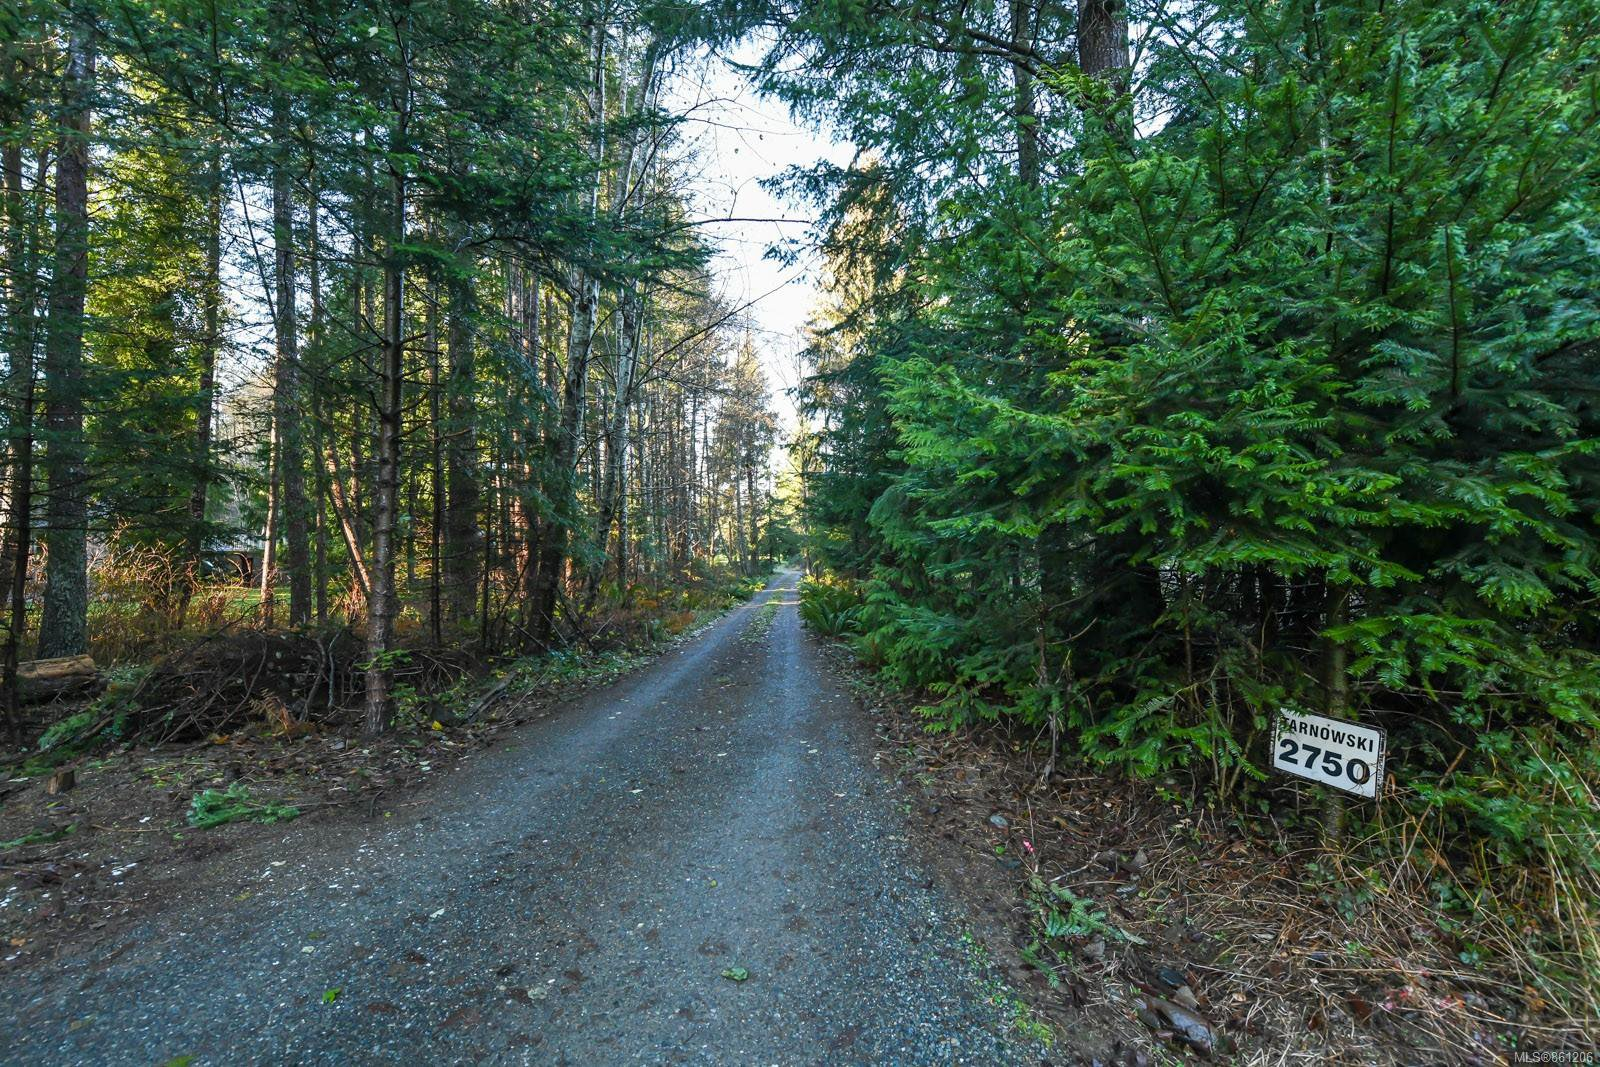 Main Photo: 2750 Wentworth Rd in : CV Courtenay North House for sale (Comox Valley)  : MLS®# 861206